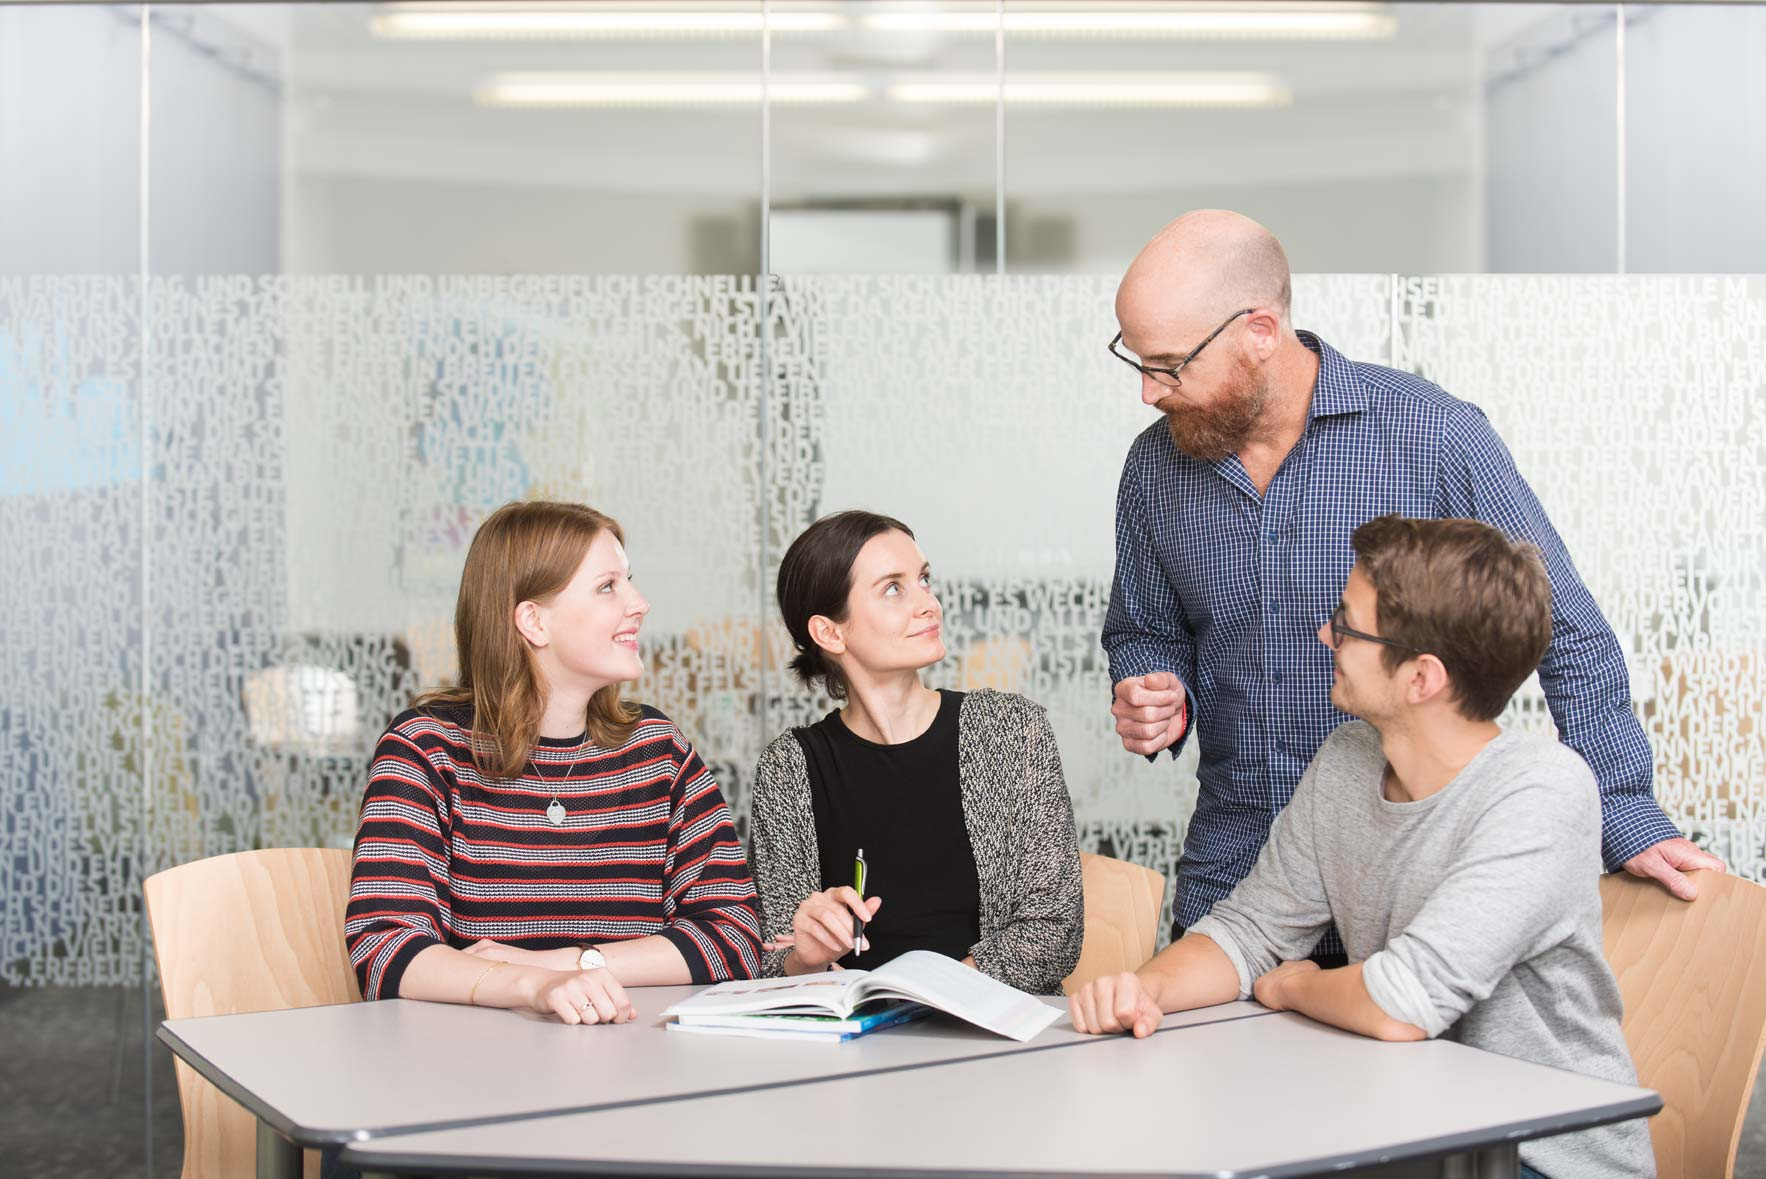 A professor talks to three students sitting at a table